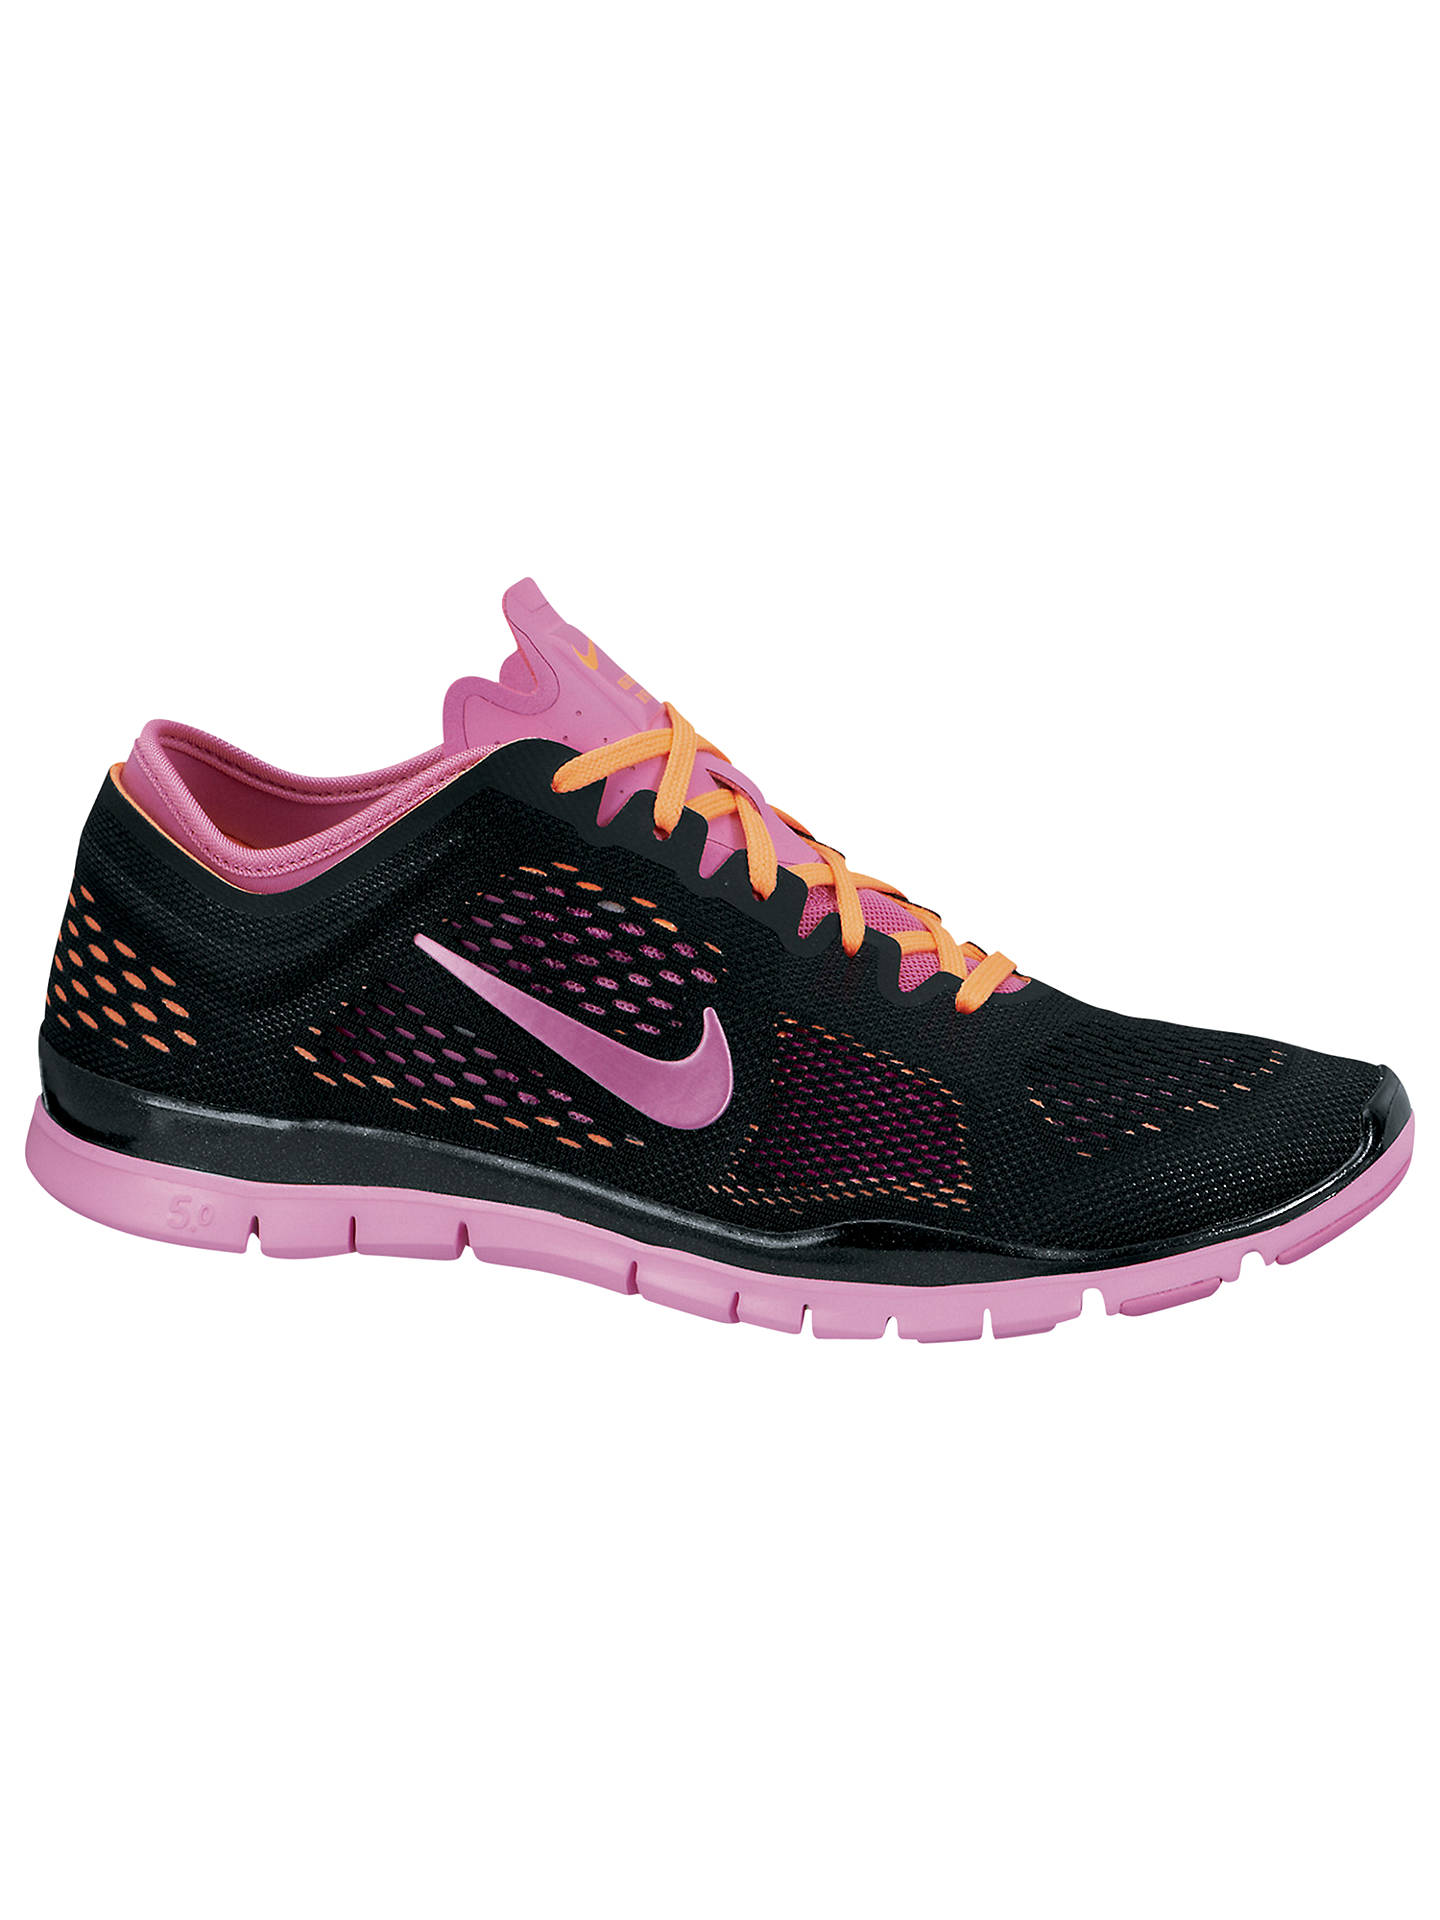 pick up 103e7 d91fb Nike Women's Free 5.0 TR Fit 4 Cross Trainers at John Lewis ...